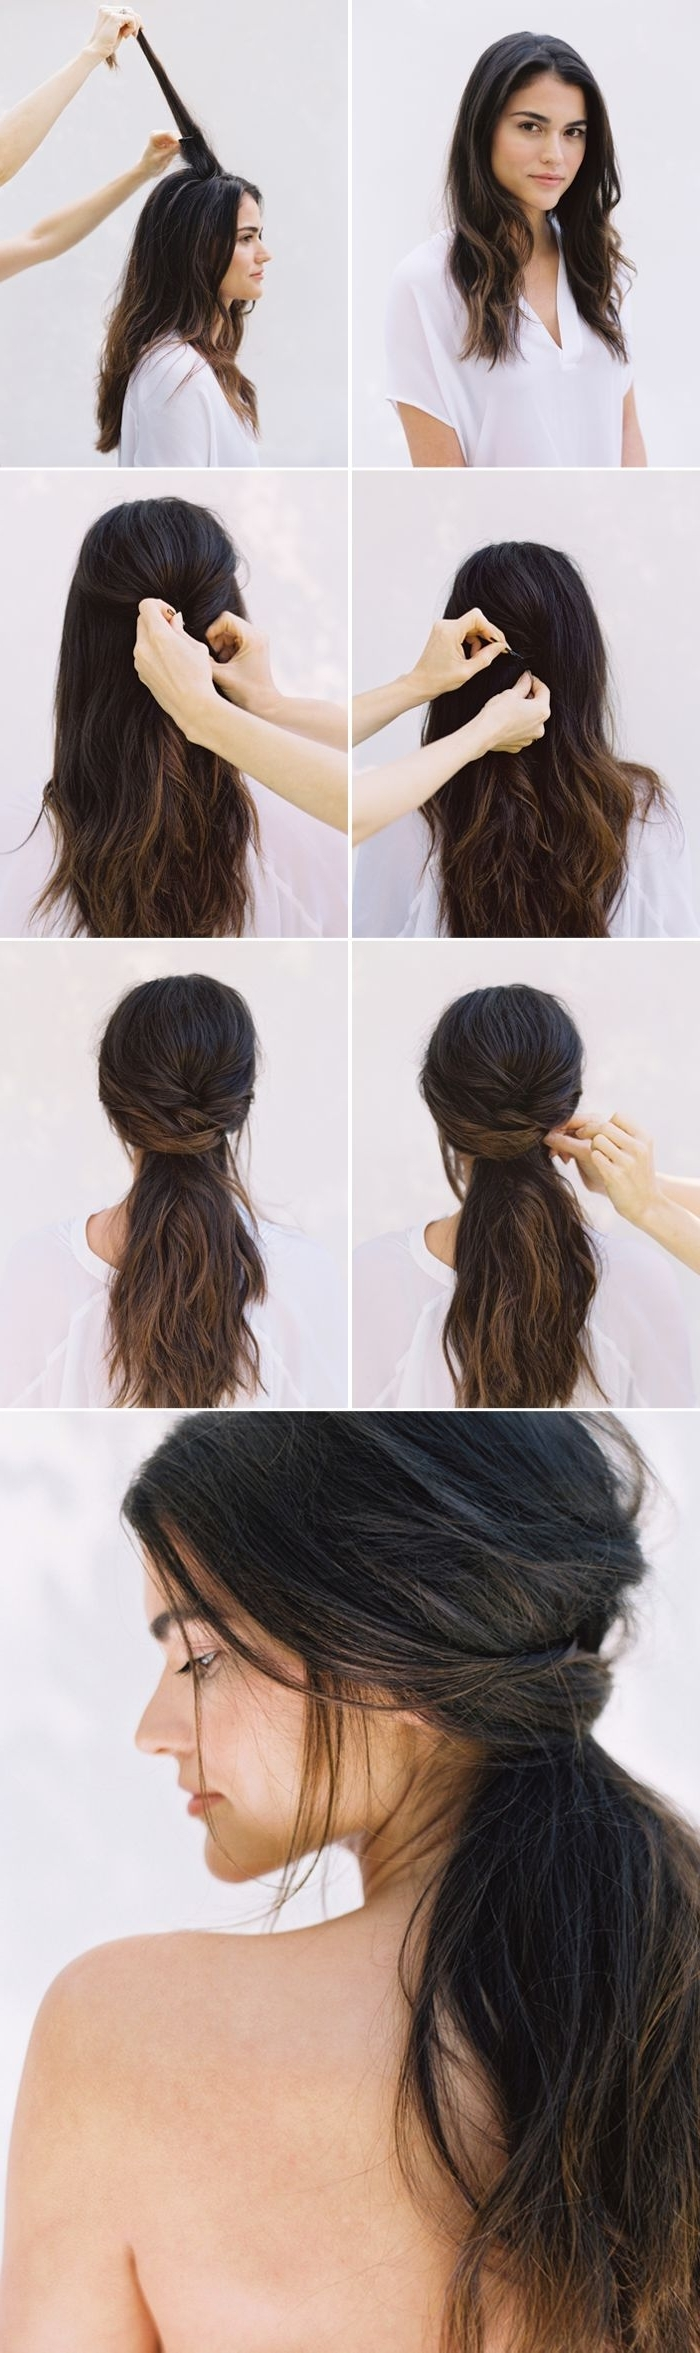 232 Best Wedding Hairstyles Images On Pinterest Within Best And Newest Part Up Part Down Wedding Hairstyles (View 2 of 15)